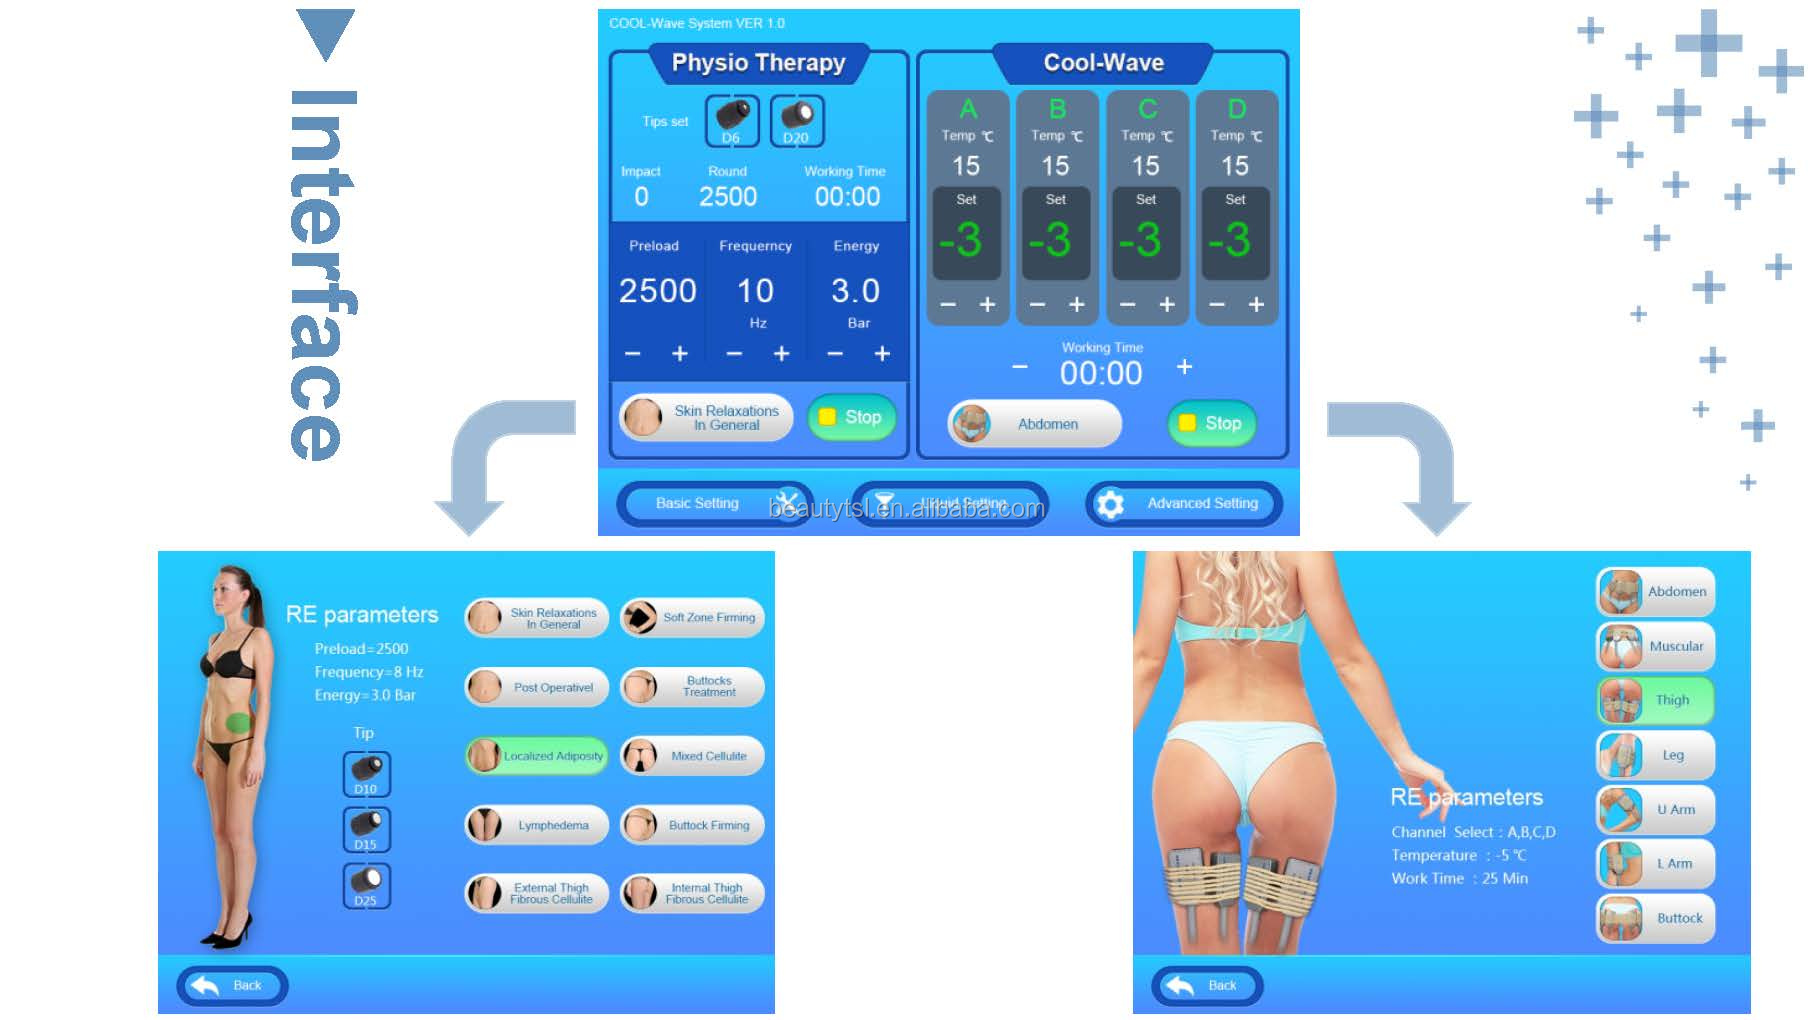 sw10f cool wave plus 12 LINGMEI Cool wave plus shock wave therapy cryo treatment 2in1 pneumatic shockwave device.jpg